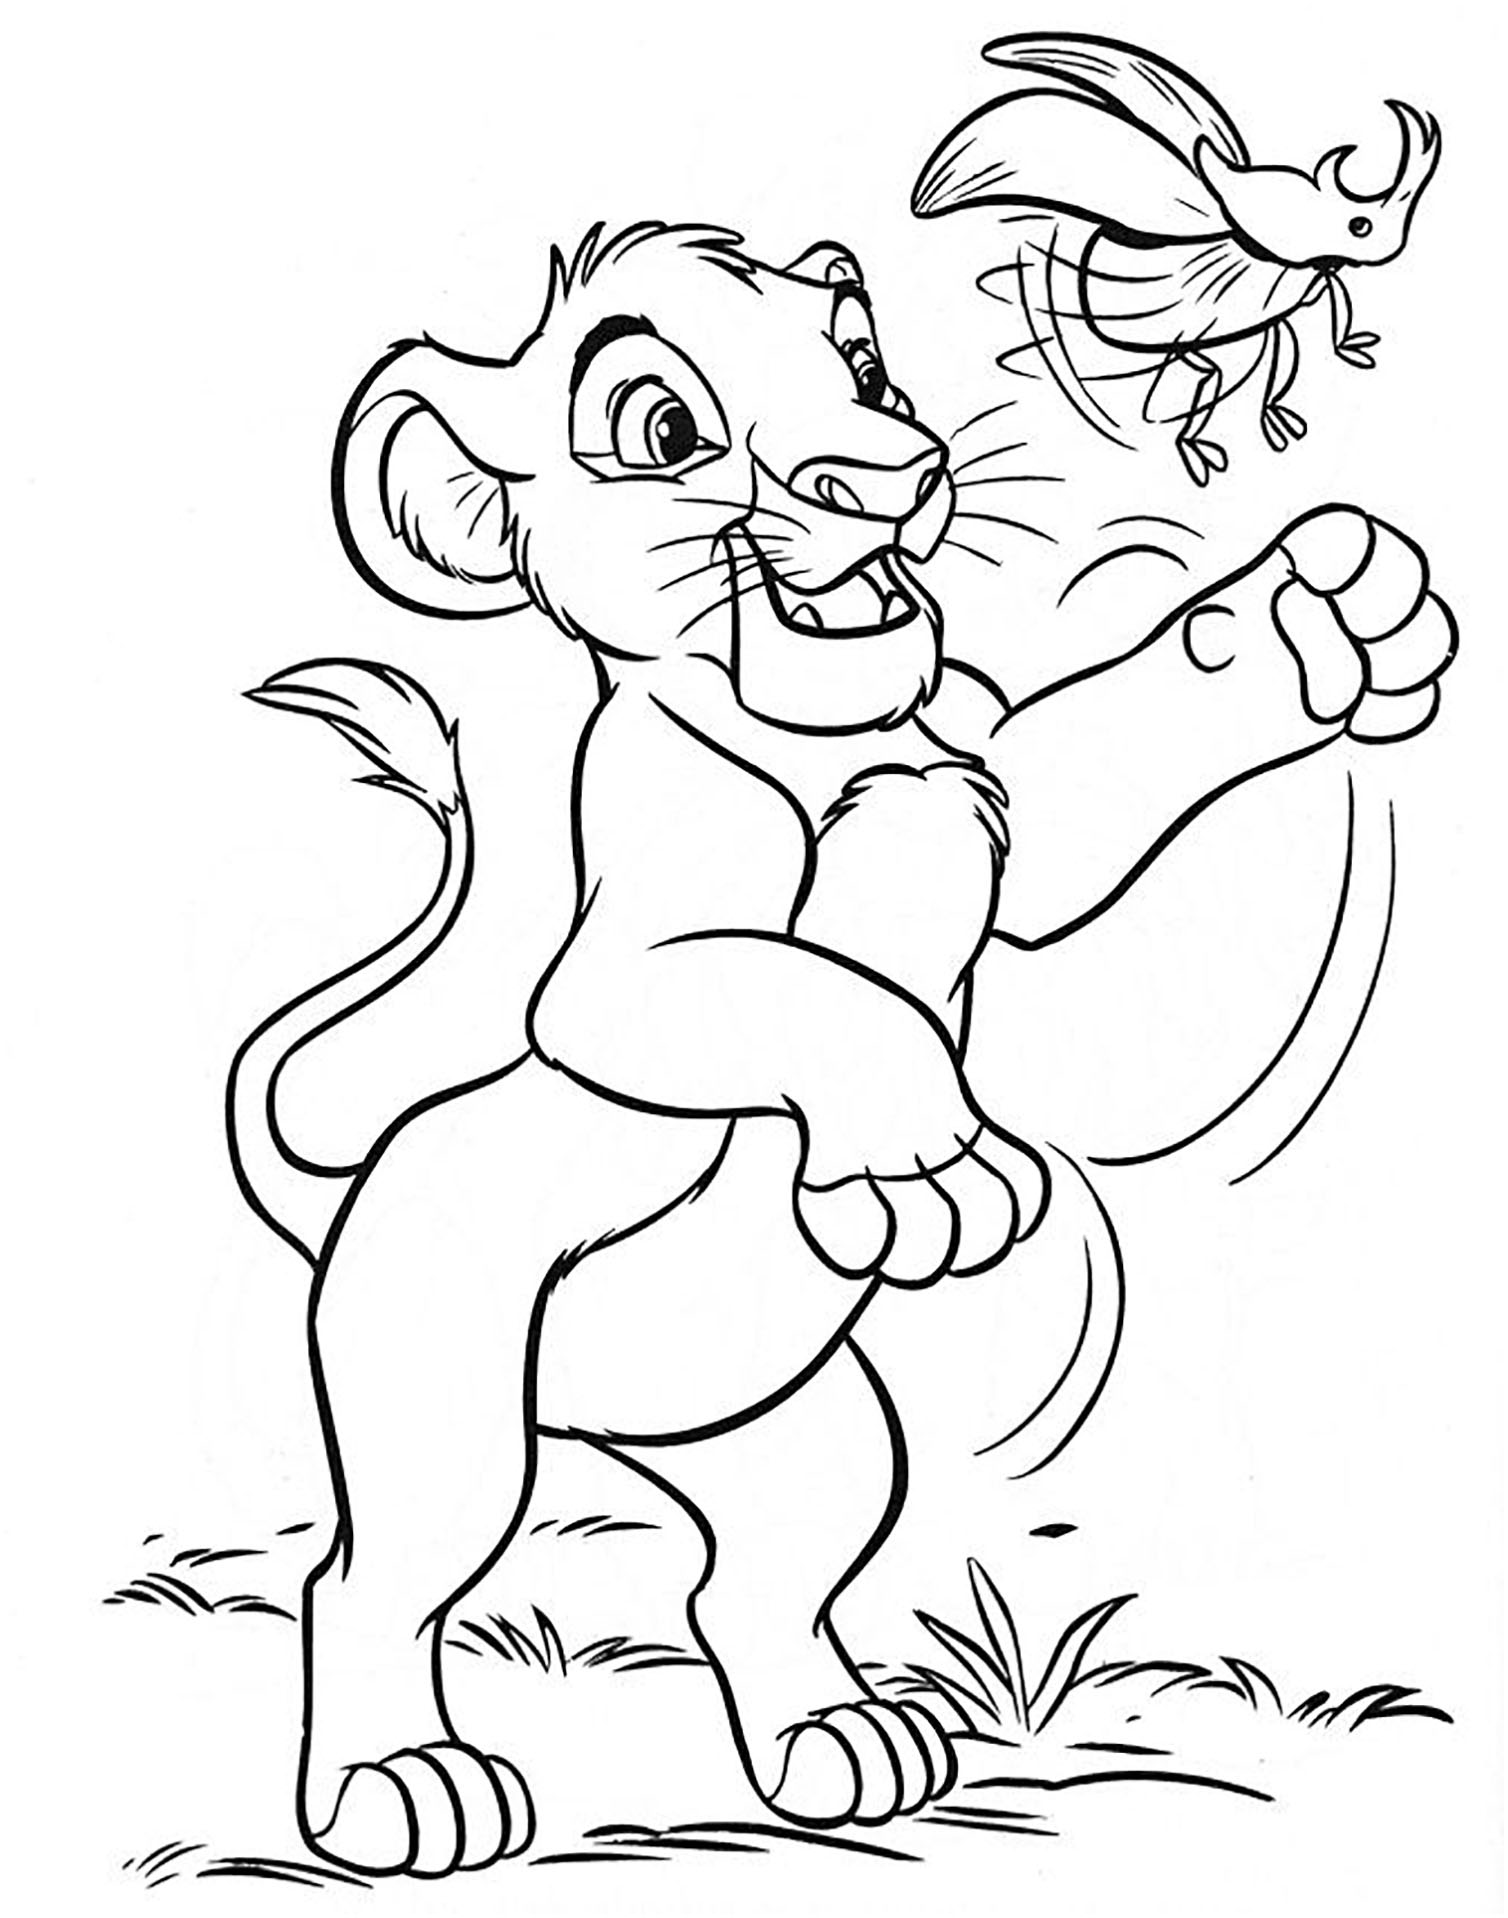 It is an image of Crazy lion king coloring pictures